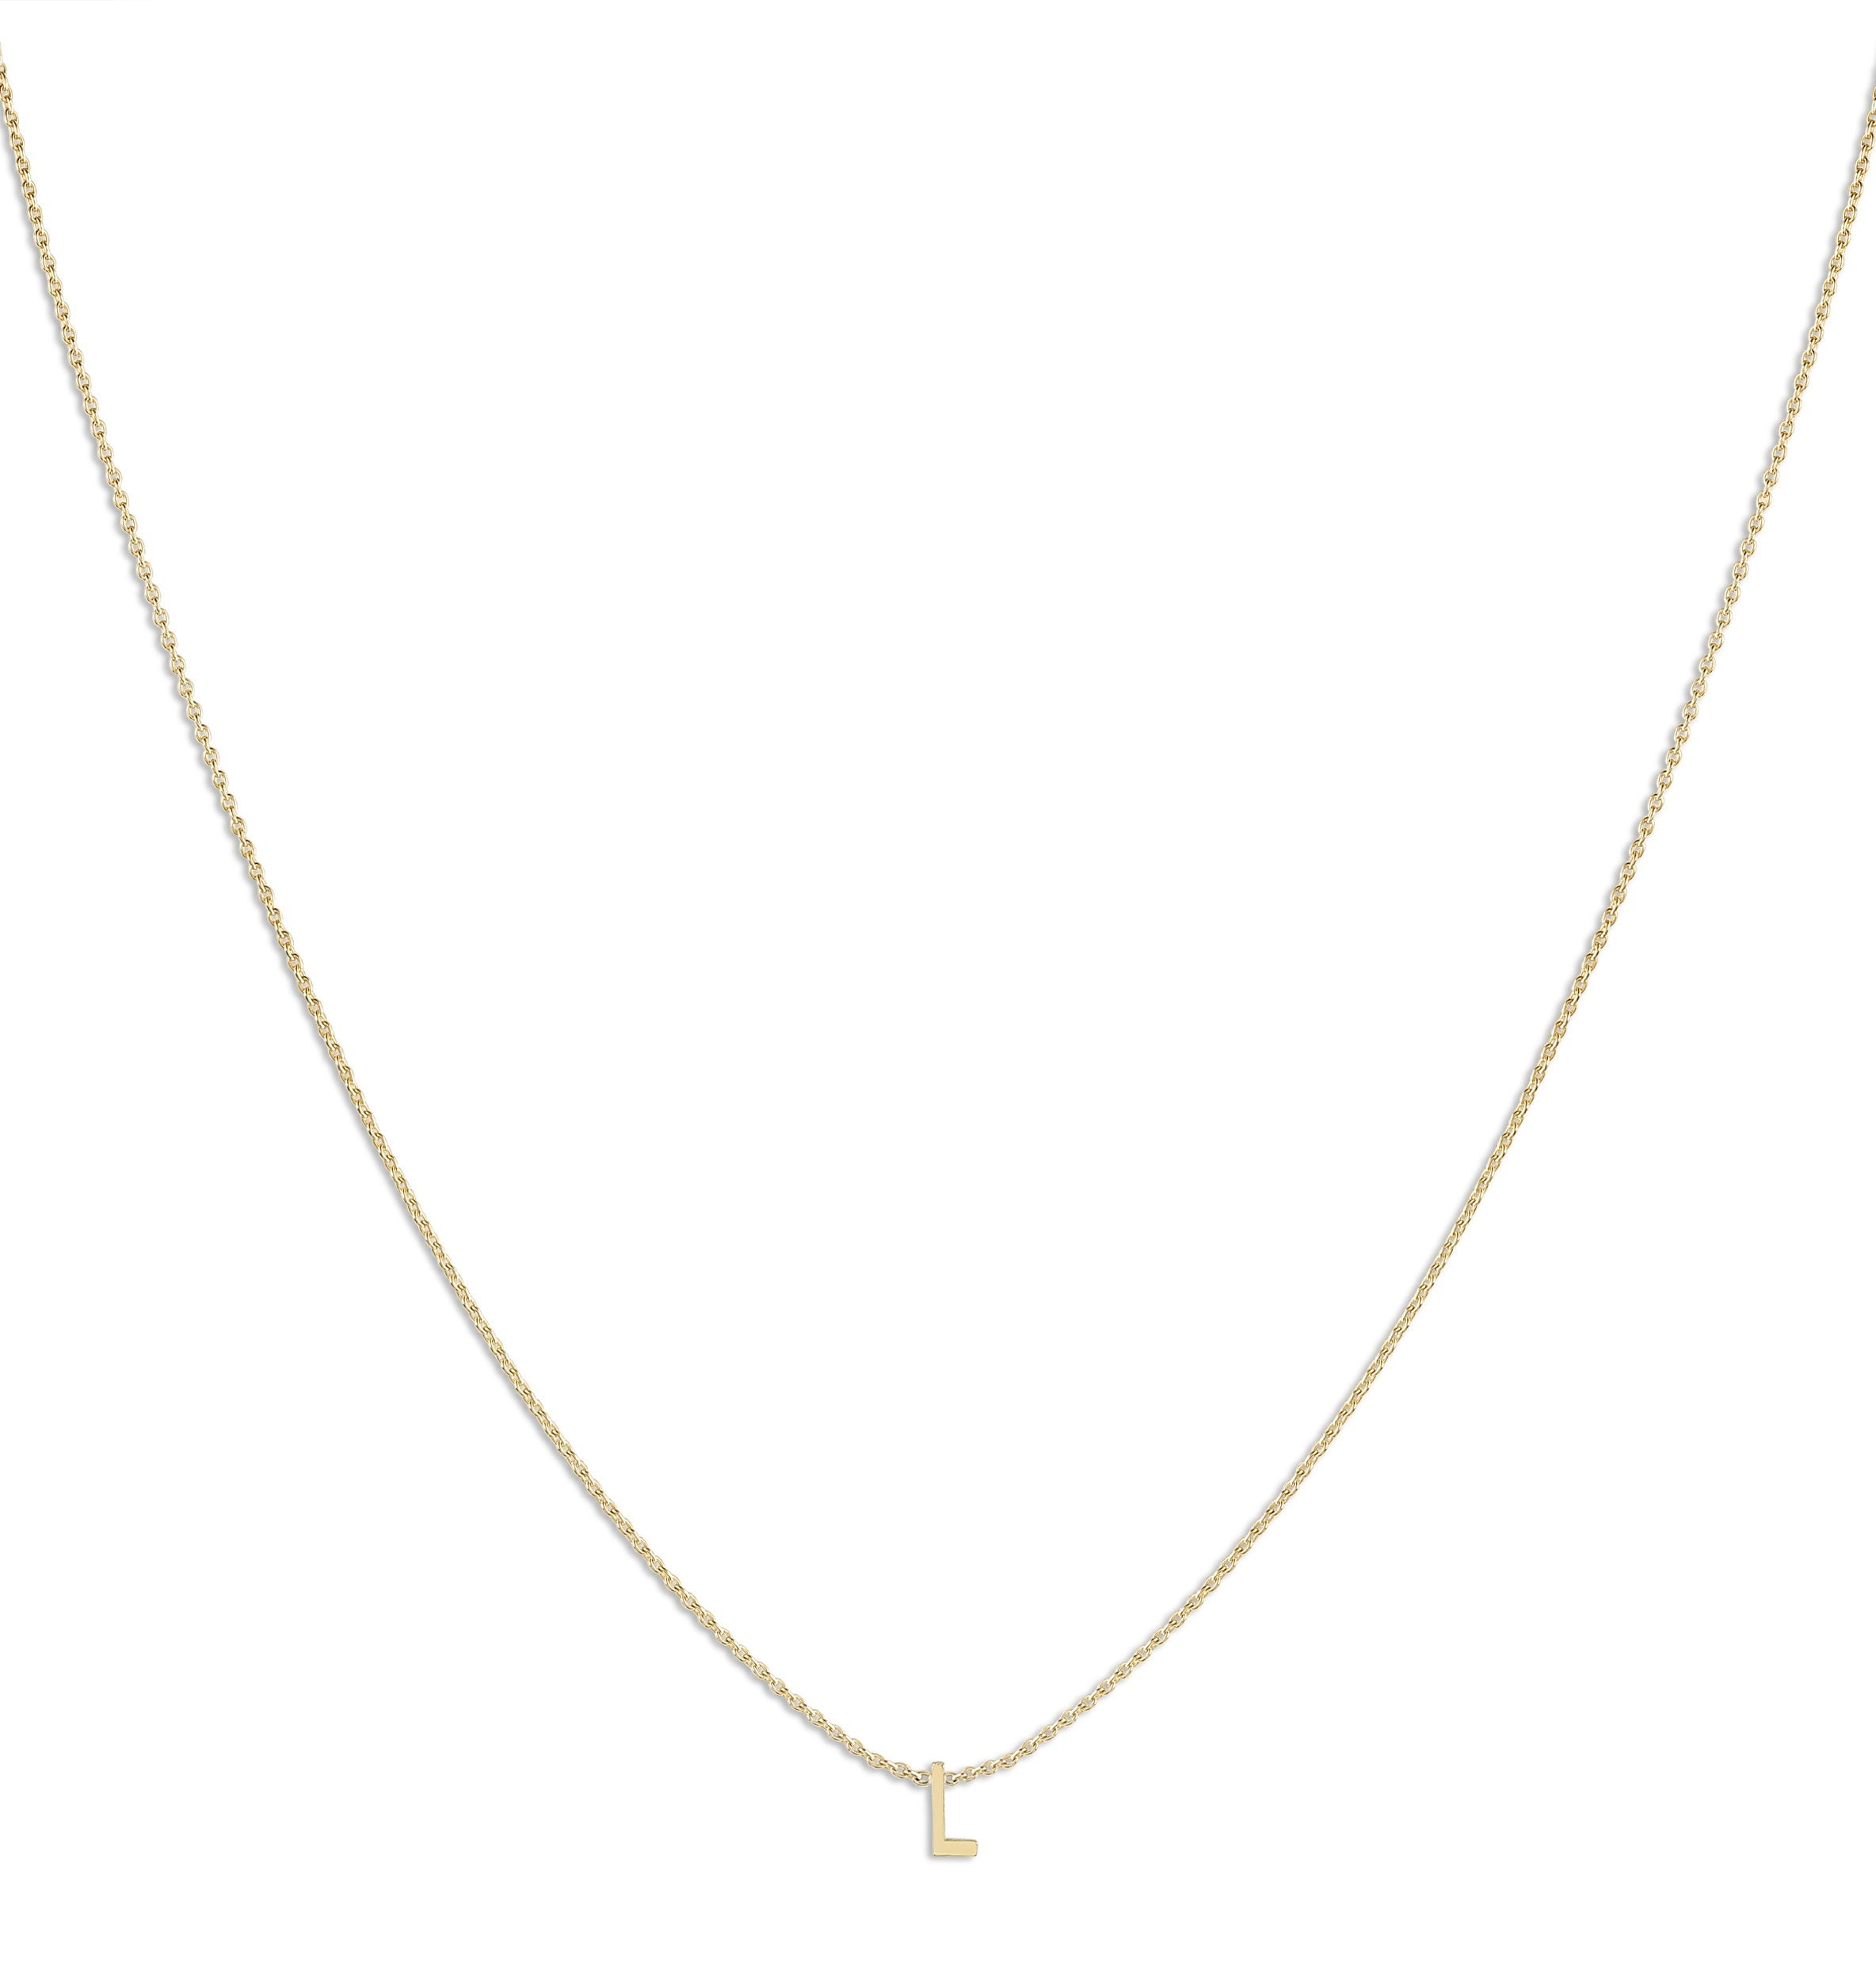 Letter Name Chain - Helen Ficalora Jewelry - 14k Yellow Gold